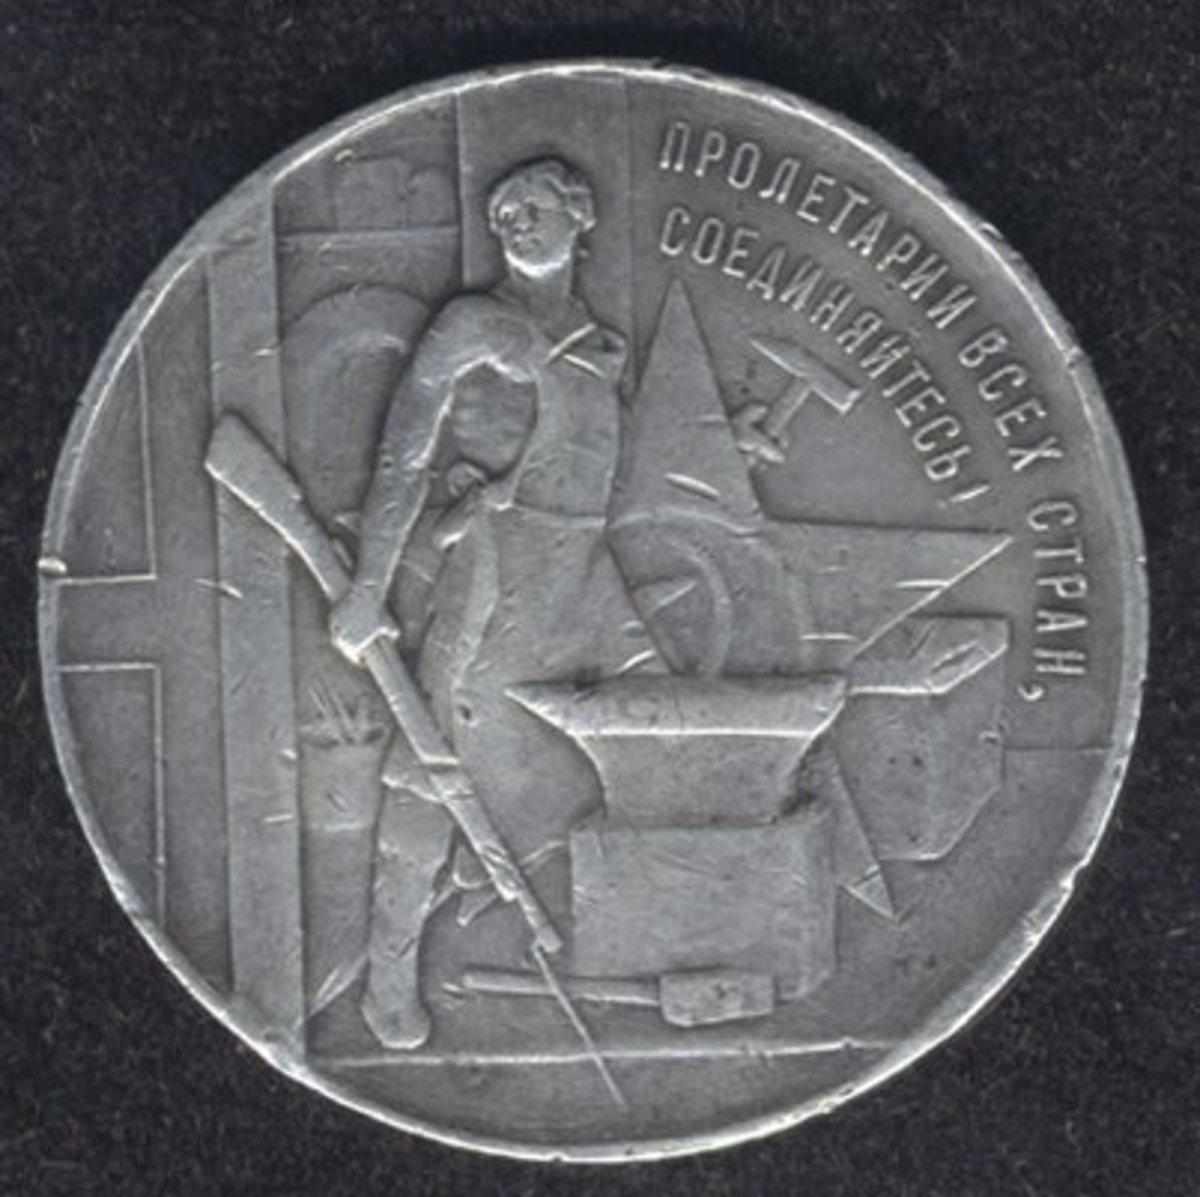 Russian coin commemorating the October Revolution depicting the rise of the worker.